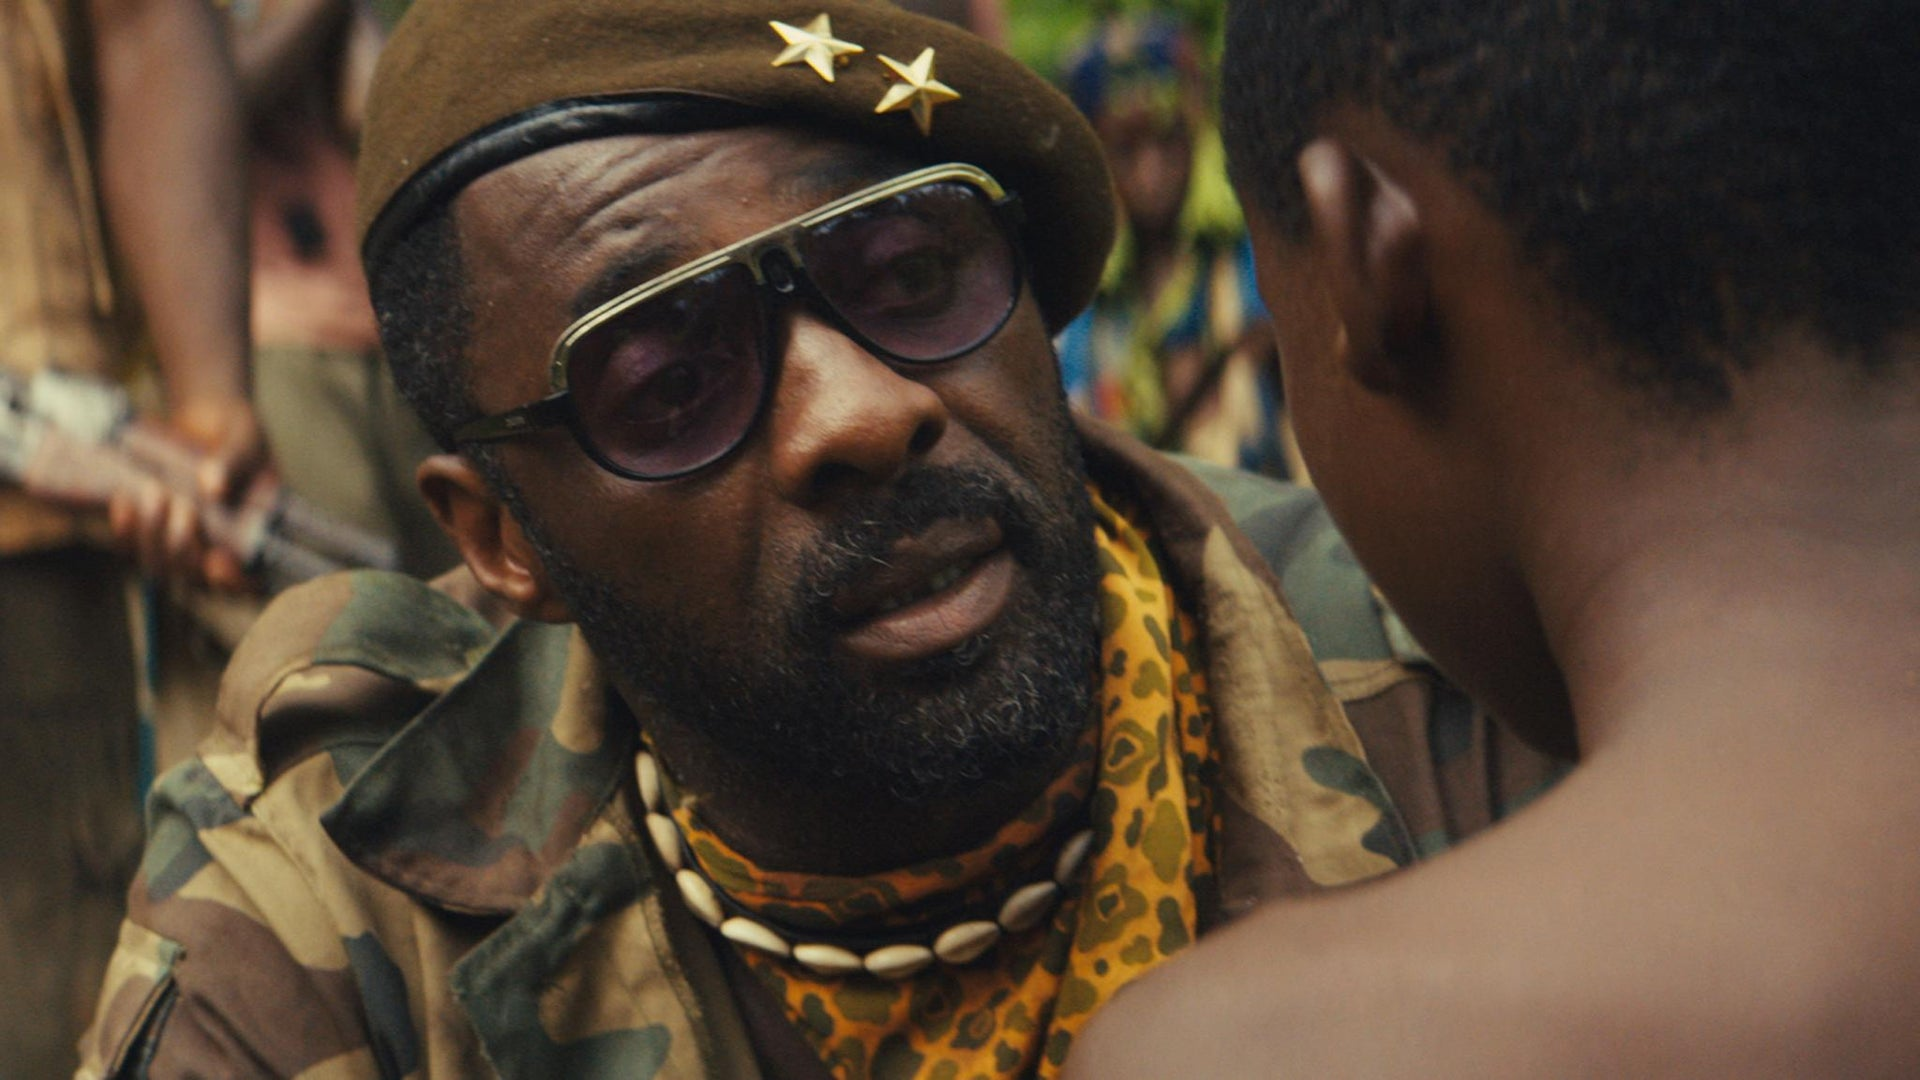 Netflix Exec Funds Education for Child Star of 'Beasts of No Nation'